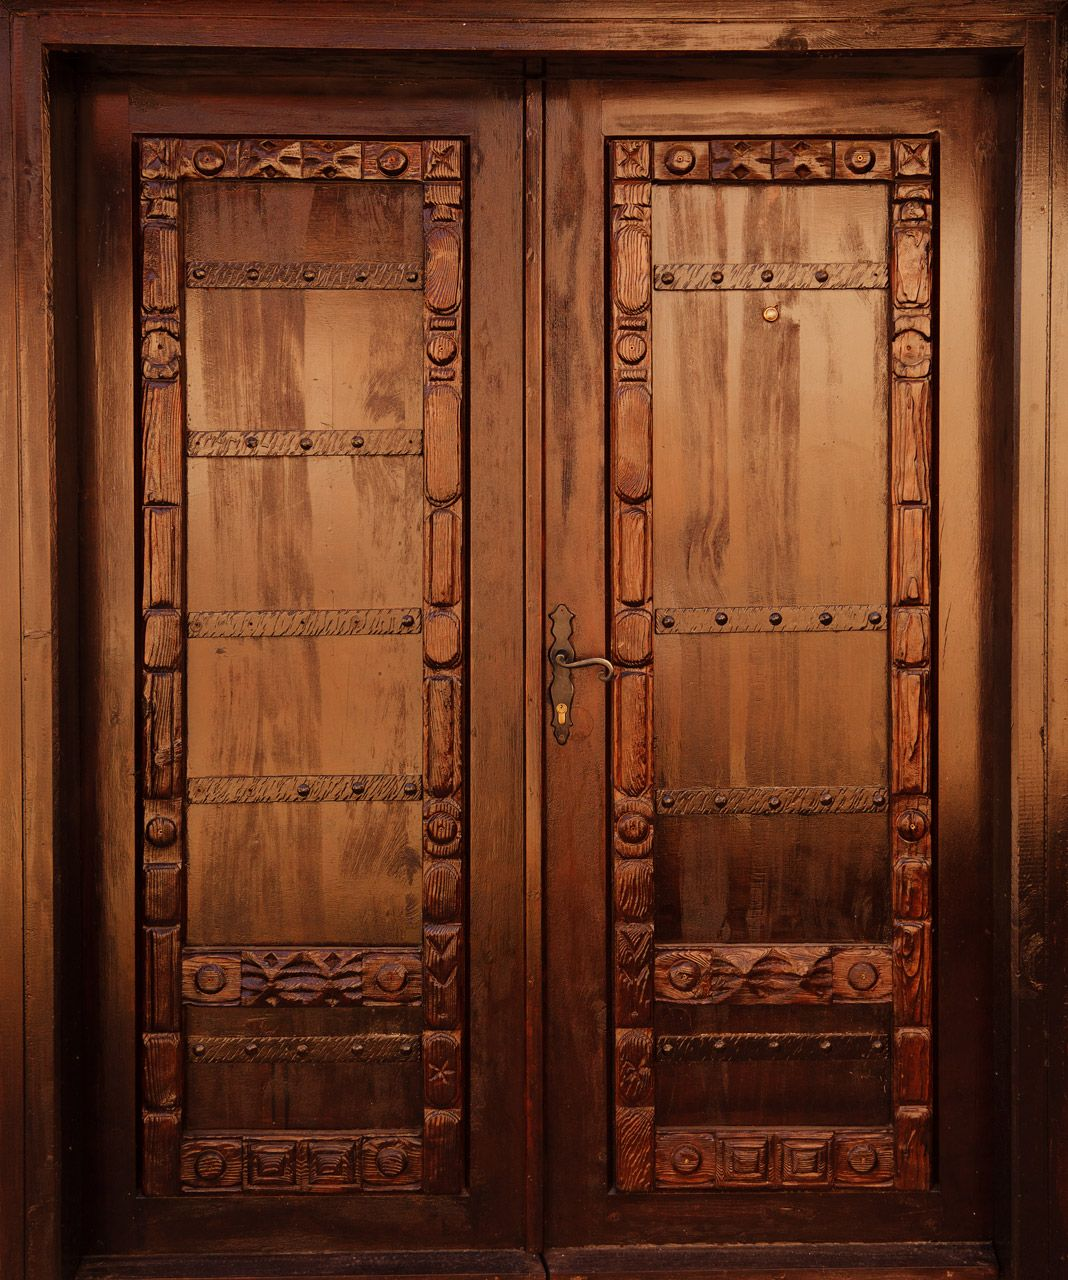 Carved Wooden Door By Petr Kratochvil For Innovative And Creative Carving  Doors Inspiring Design Ideas - Large Wooden Door Carved Wooden Door By Petr Kratochvil Dream